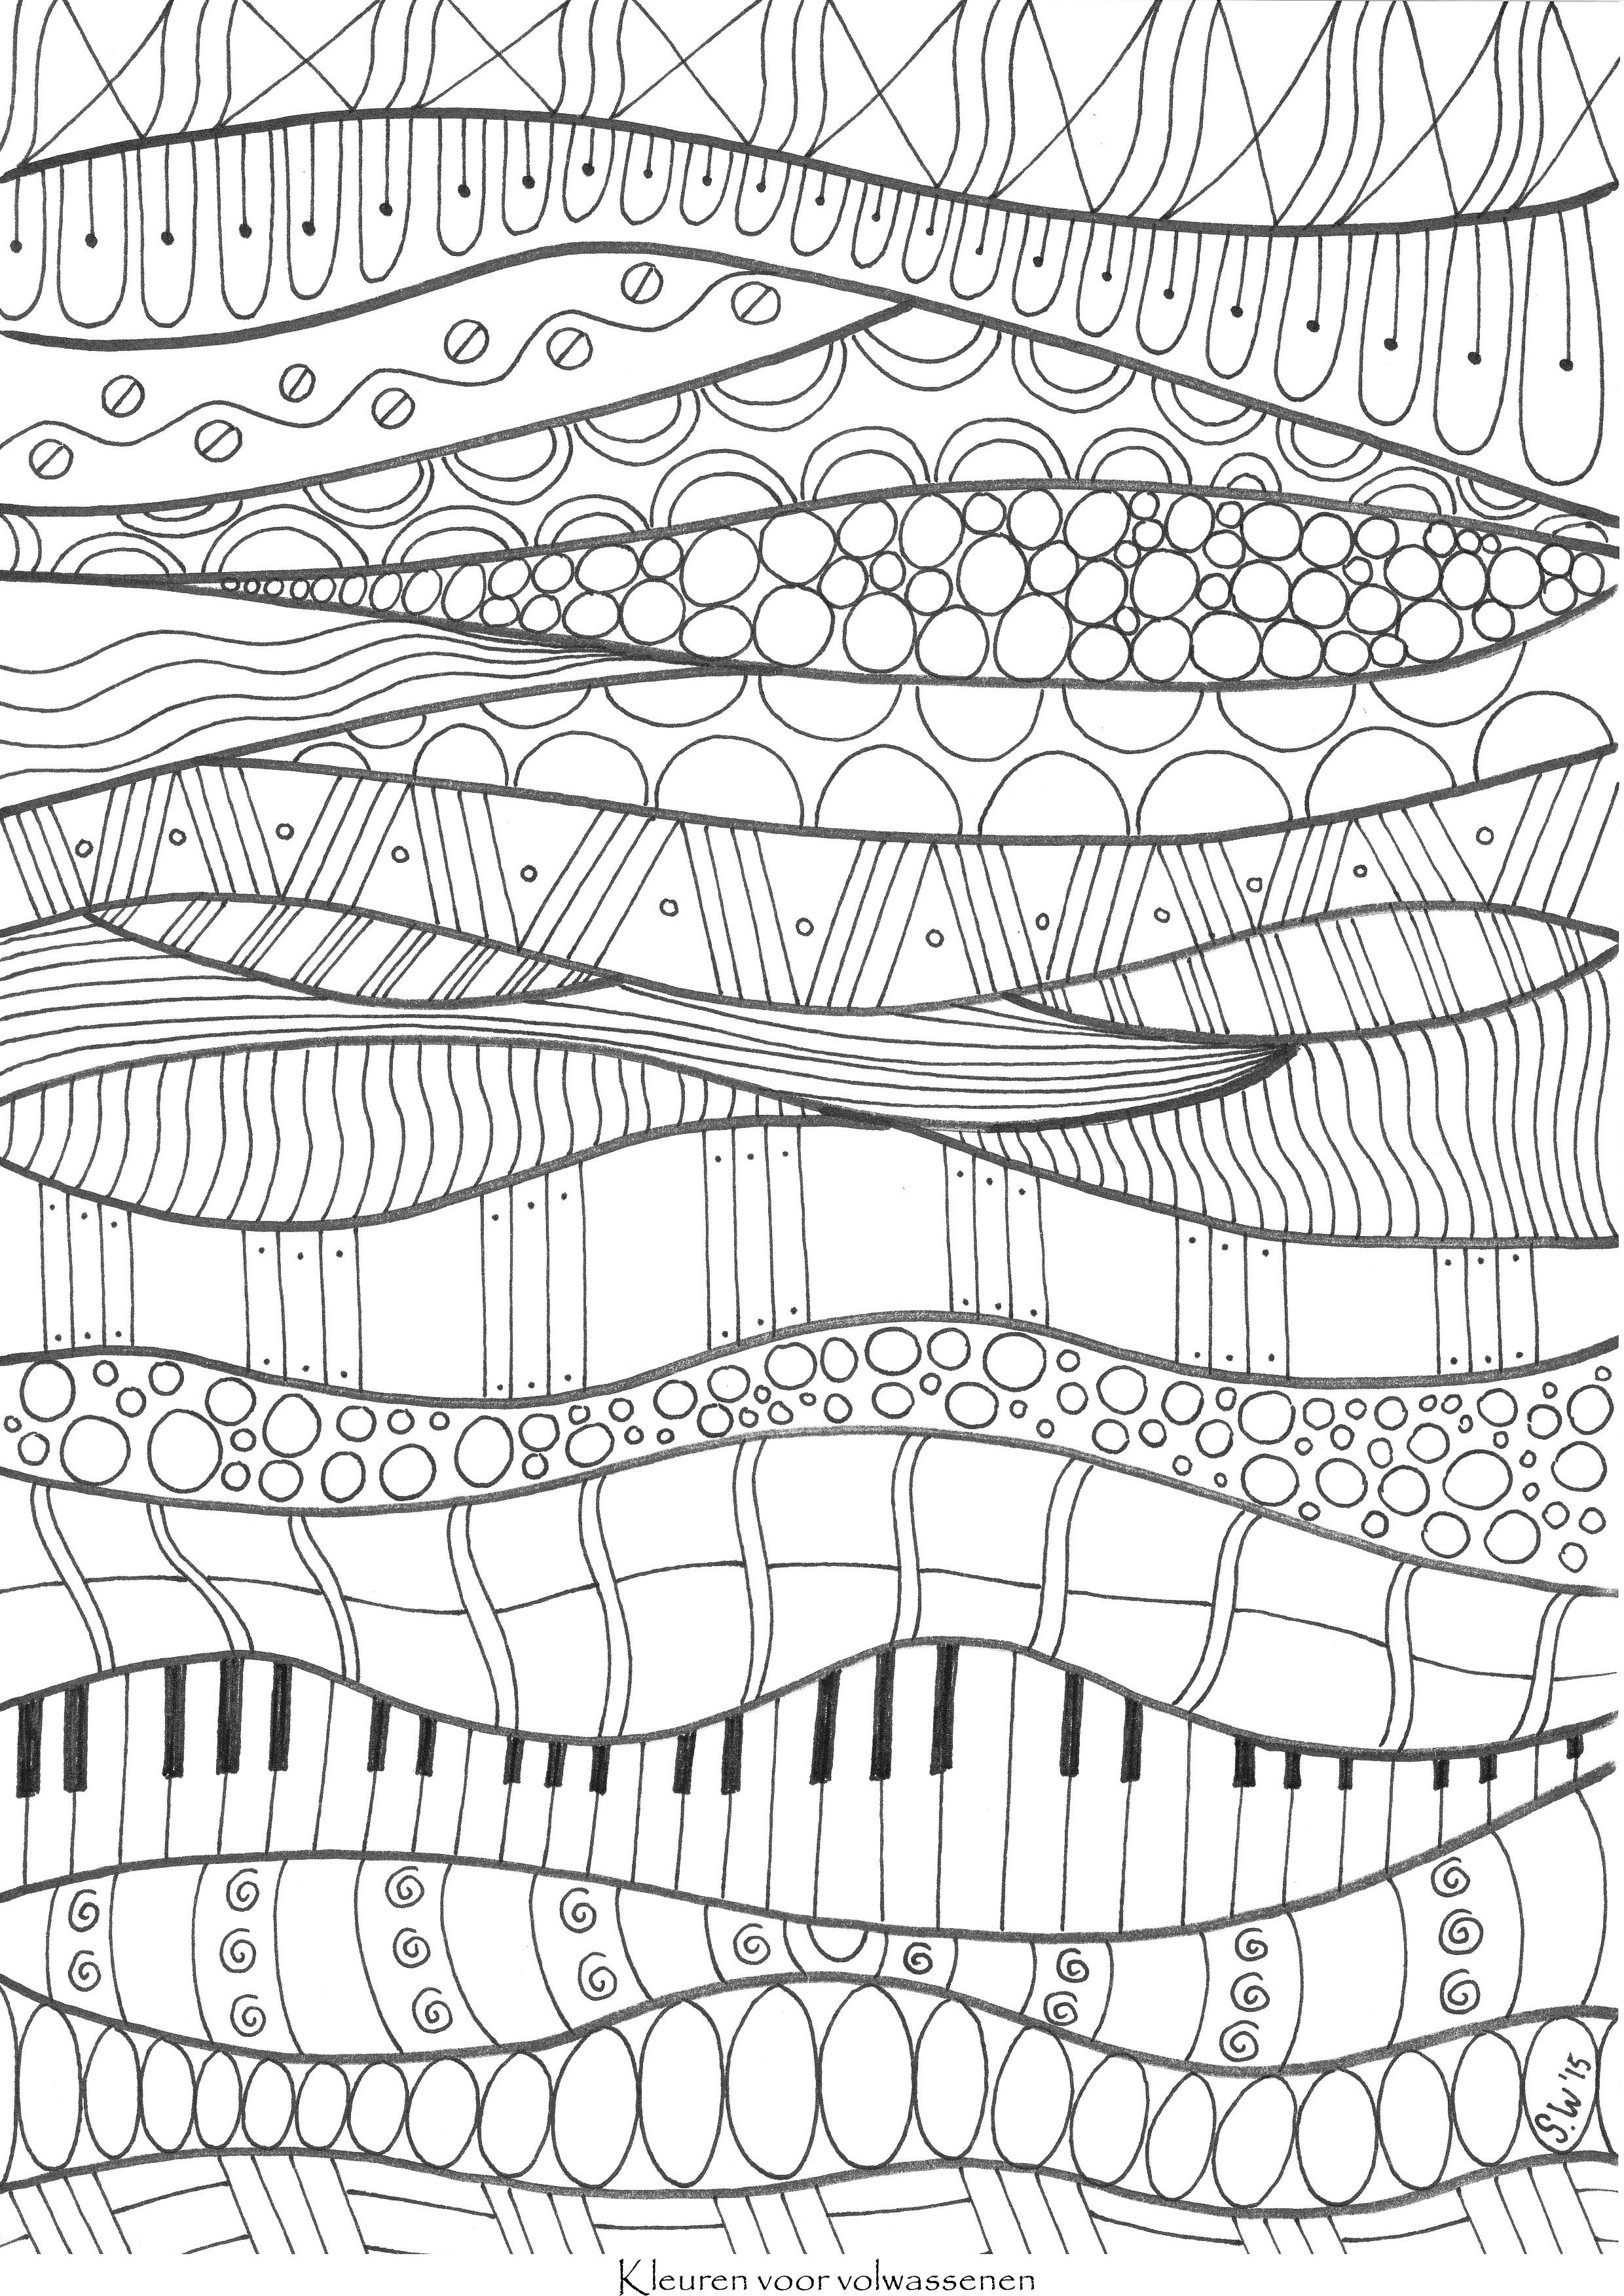 Coloring Page Ult Coloring Book Pagesmore Pins Like This At Fosterginger P